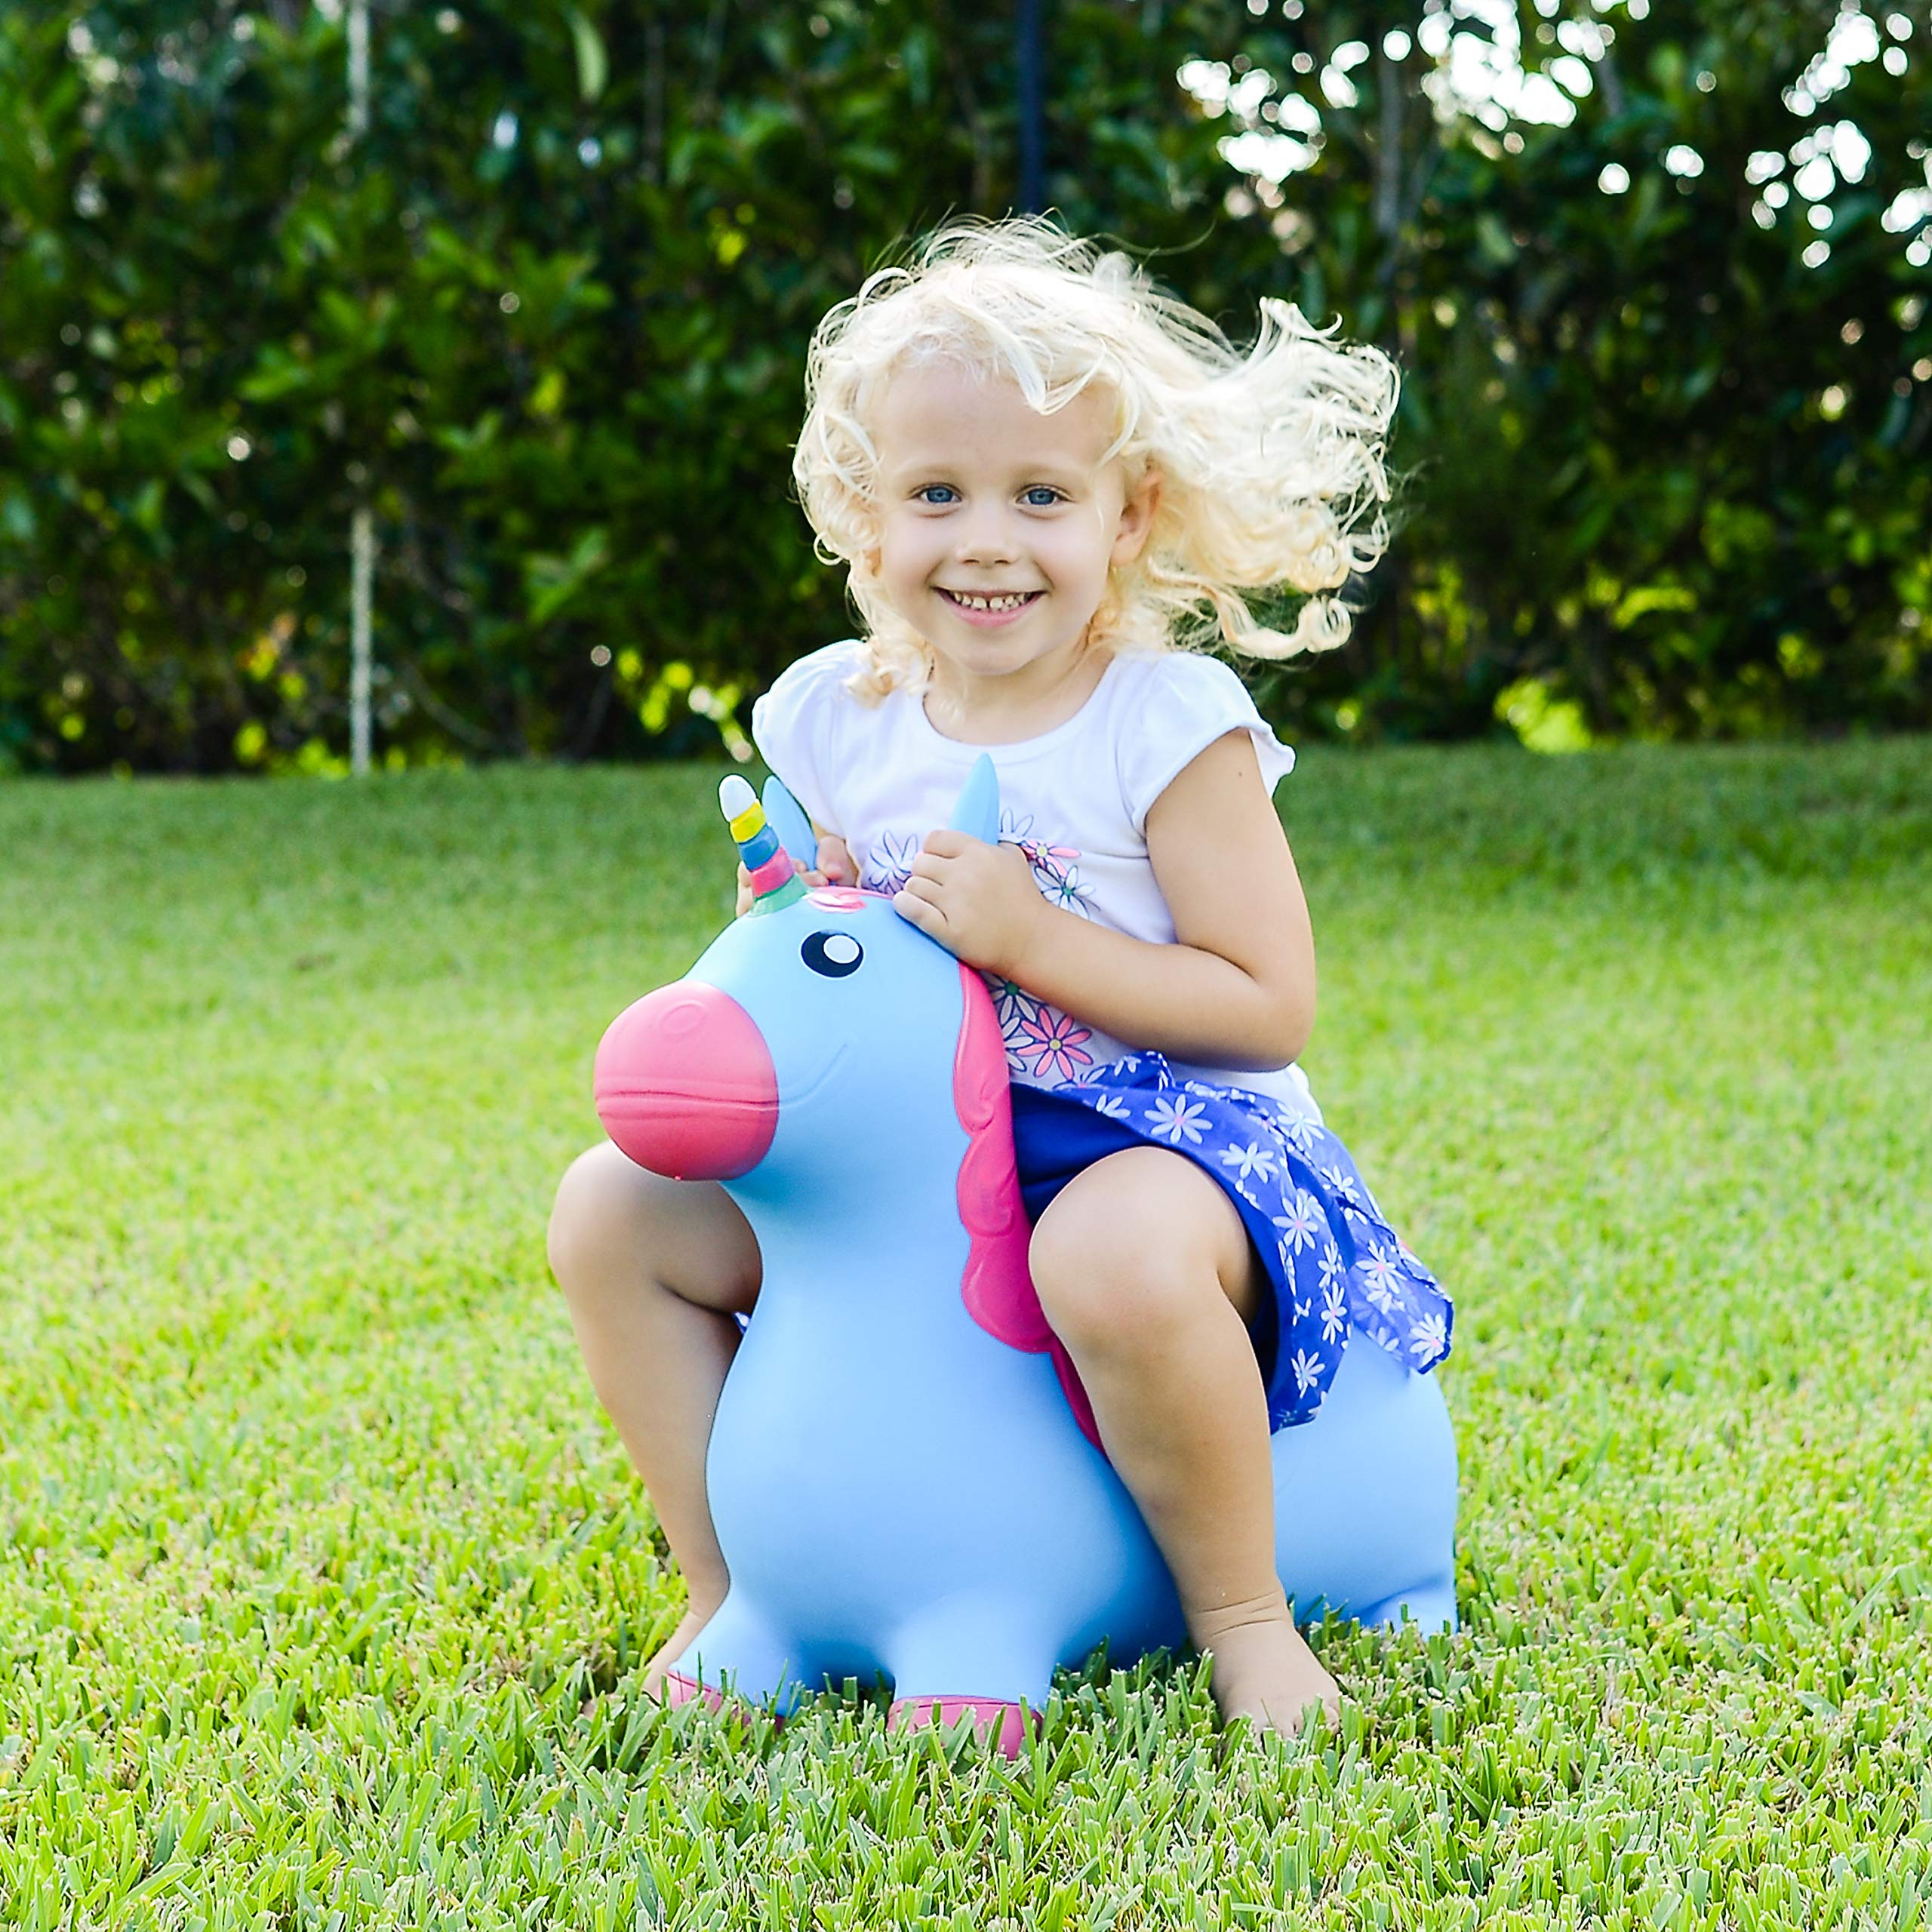 Kiddie Play Hopper Ball Unicorn Inflatable Hoppity Hop Bouncy Horse Toy (Pump Included) by Kiddie Play (Image #4)